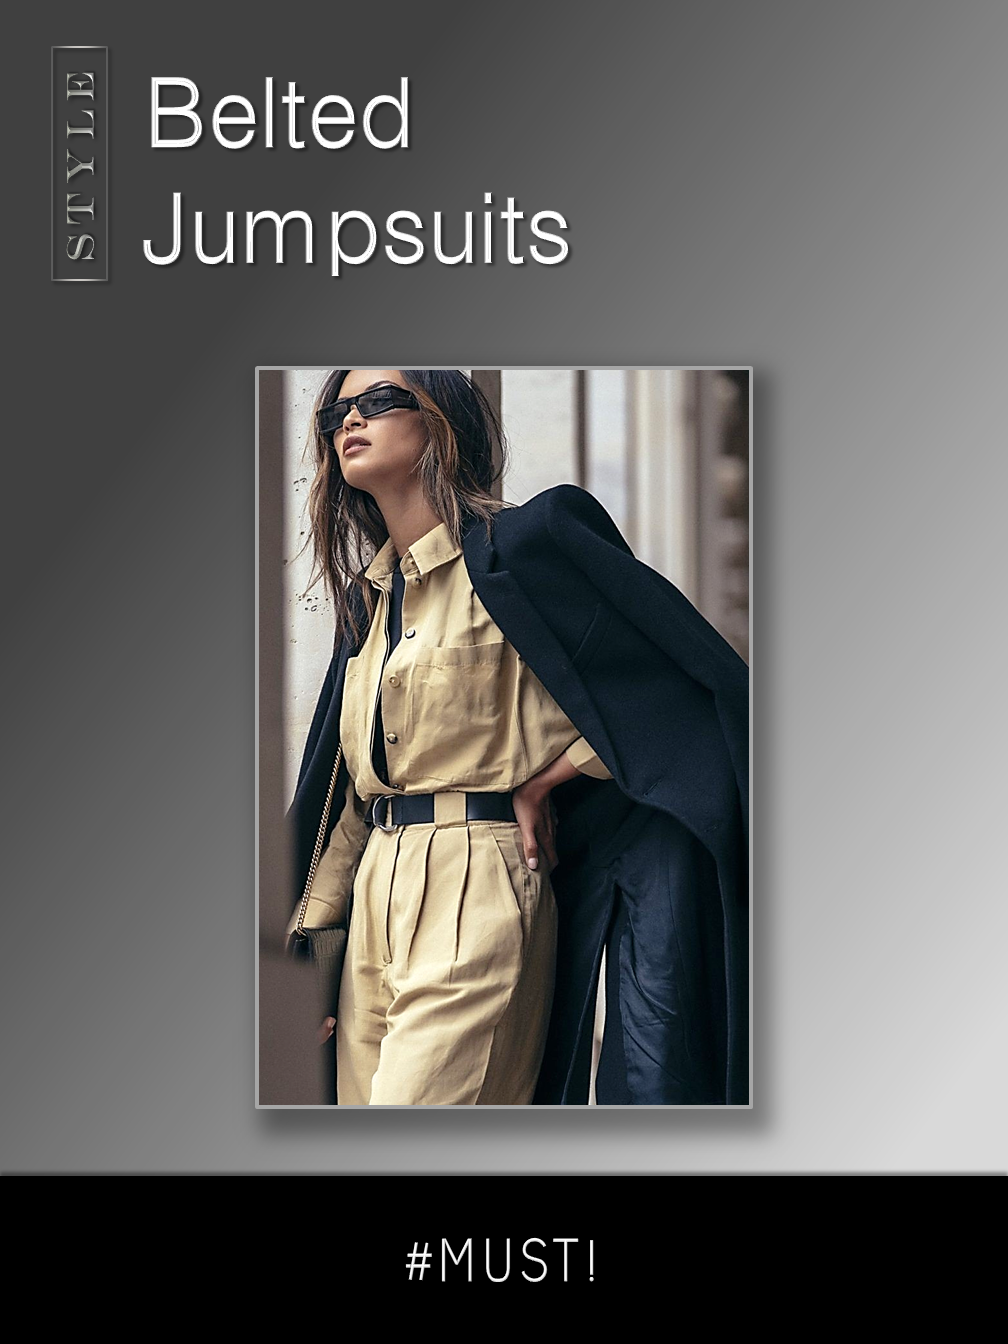 Belted Jumpsuits